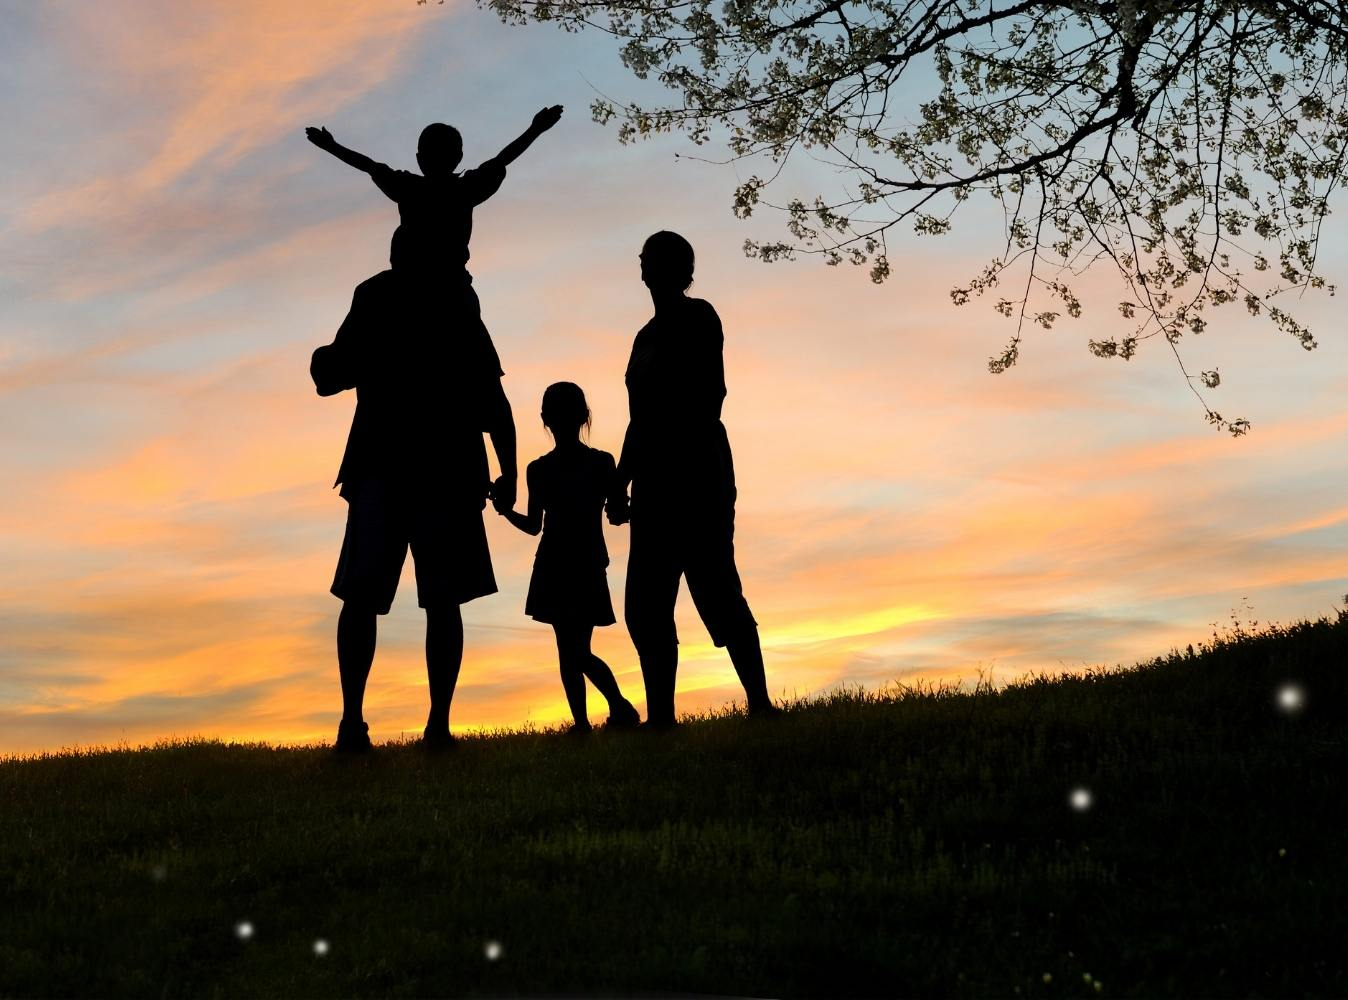 Silhouette of family holding hands walking in the park at sunset.